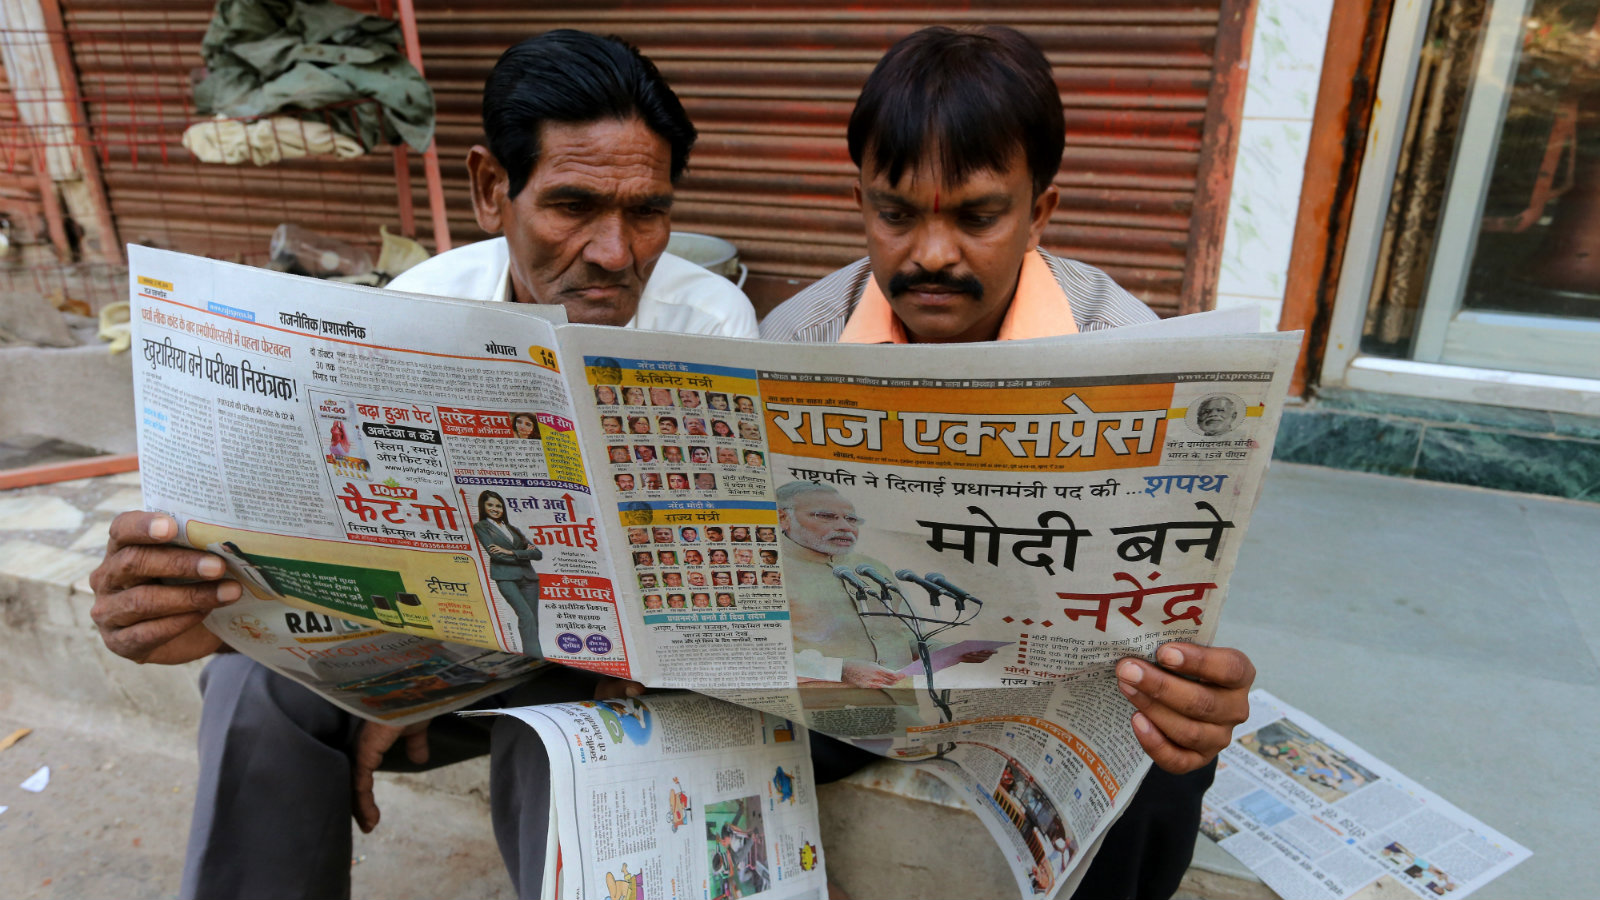 By quietly expanding the role of Hindi in government, Narendra Modi